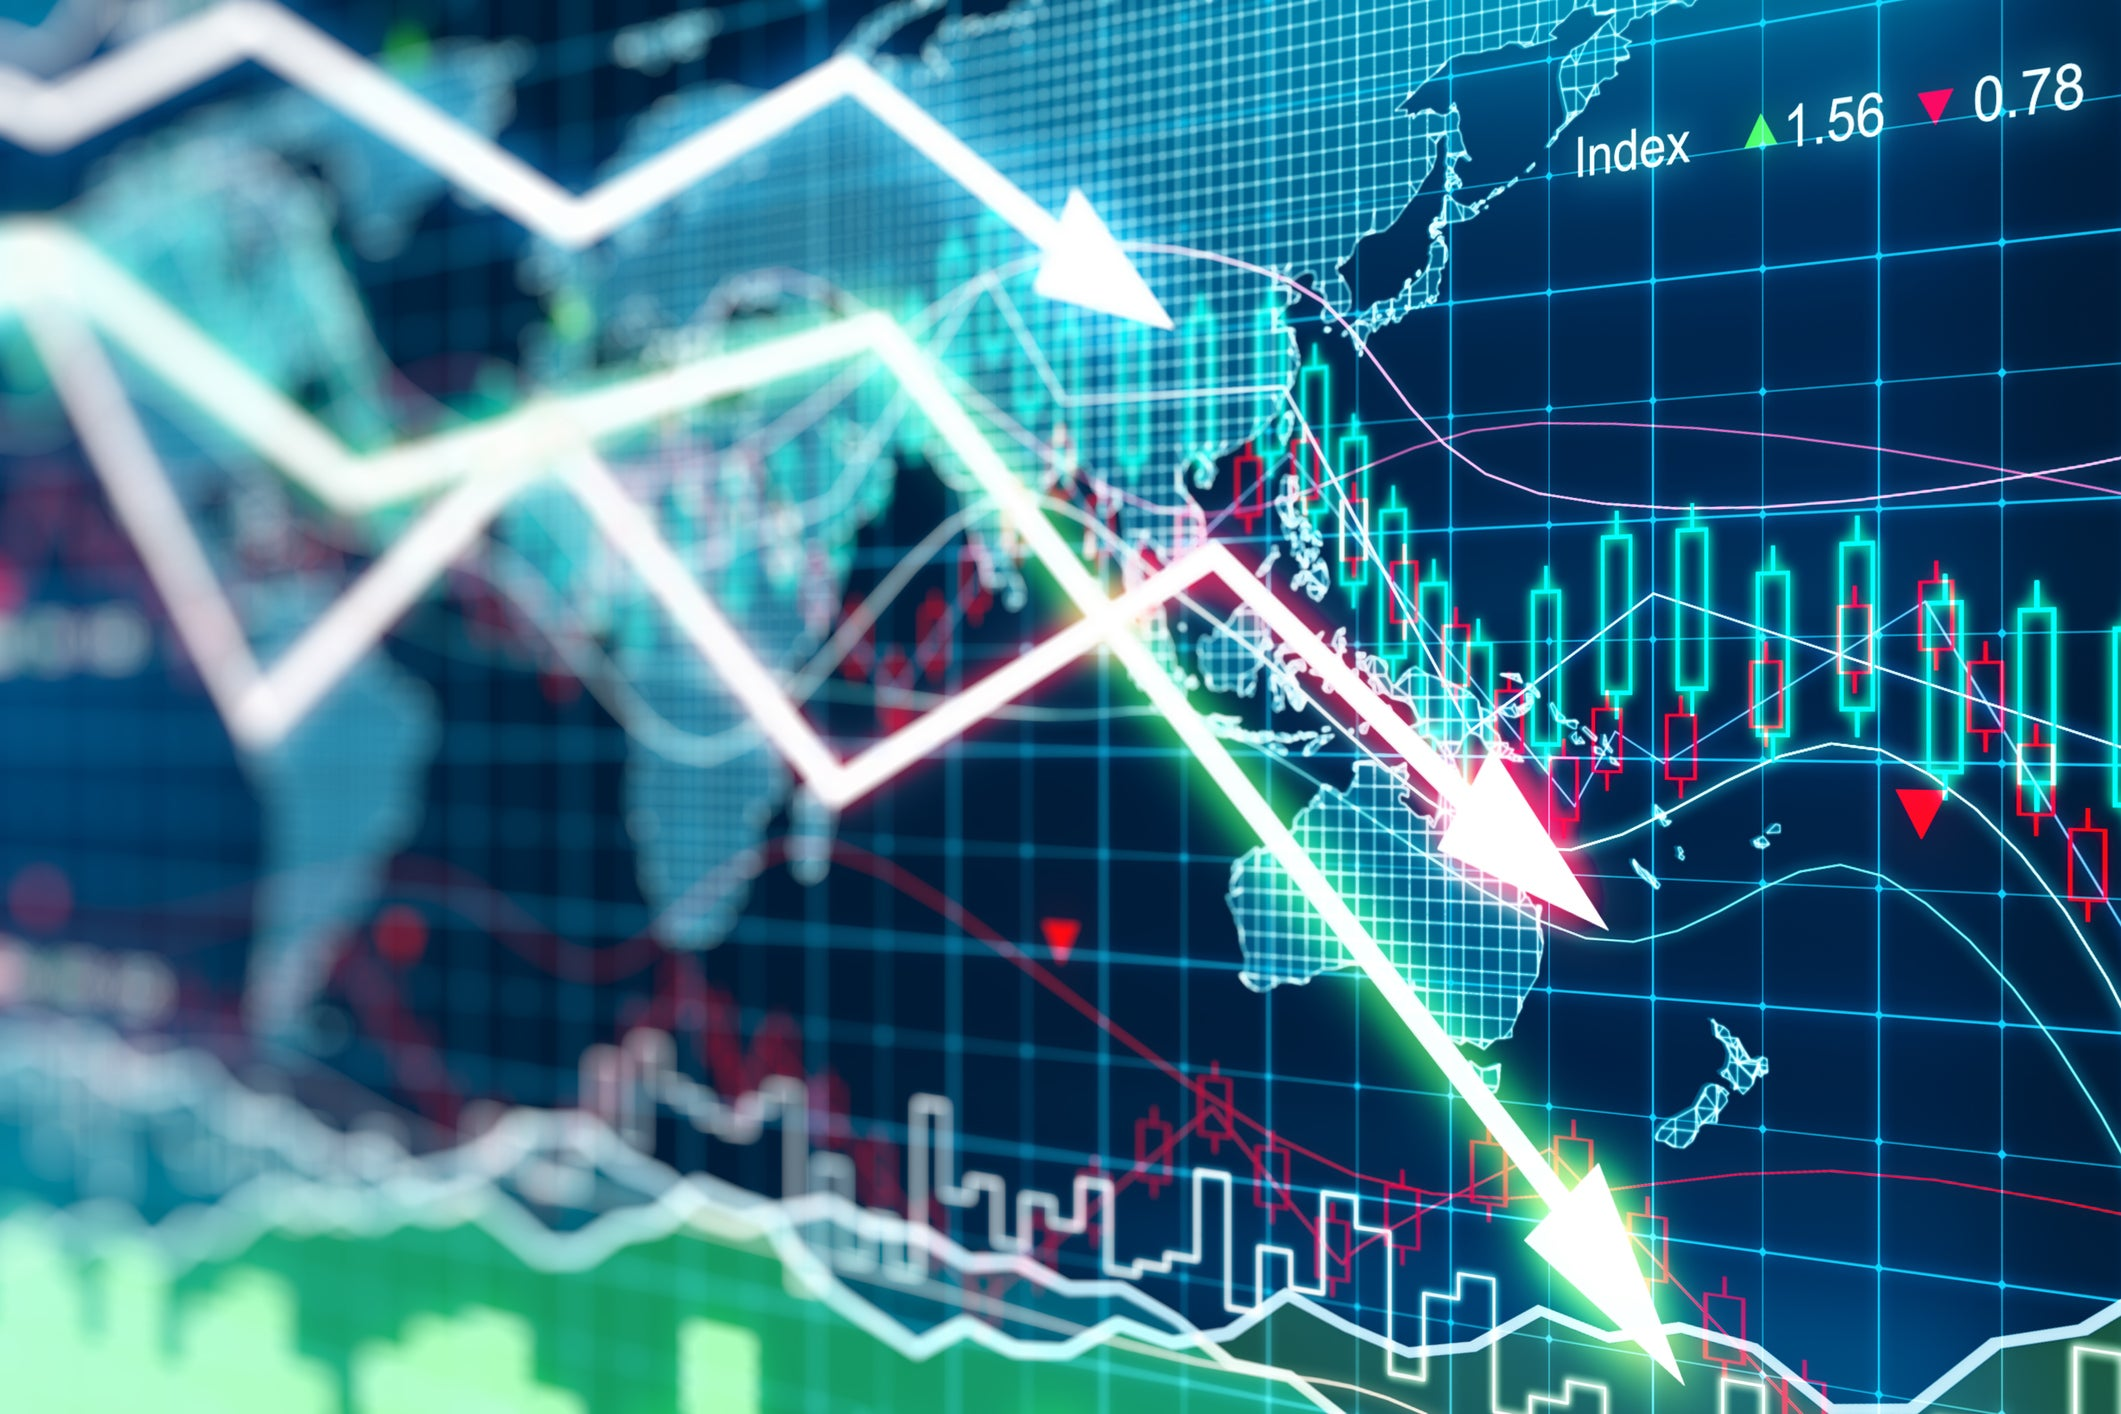 Image of article 'Here's Why Bank of America, JPMorgan Chase, and Other U.S. Bank Stocks Are Tanking Today'